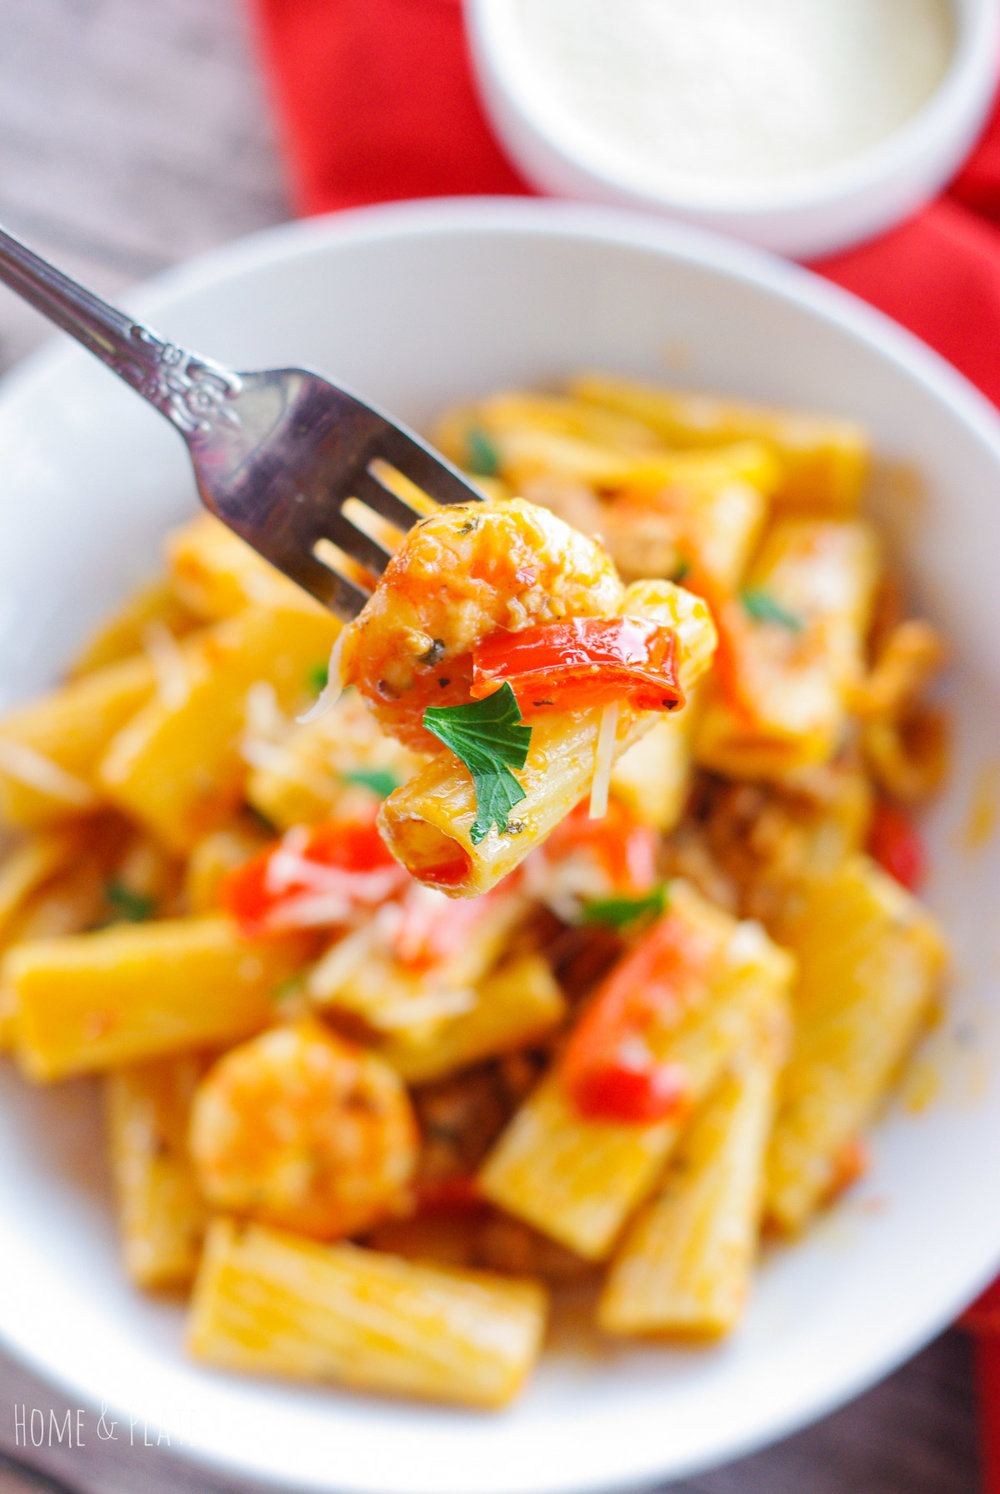 Sausage & Shrimp Rigatoni in a Spicy Parmesan Cream Sauce | www.homeandplate.com | Hot sausage and succulent shrimp marry well smothered in a spicy Parmesan cream sauce a top of bed of rigatoni.